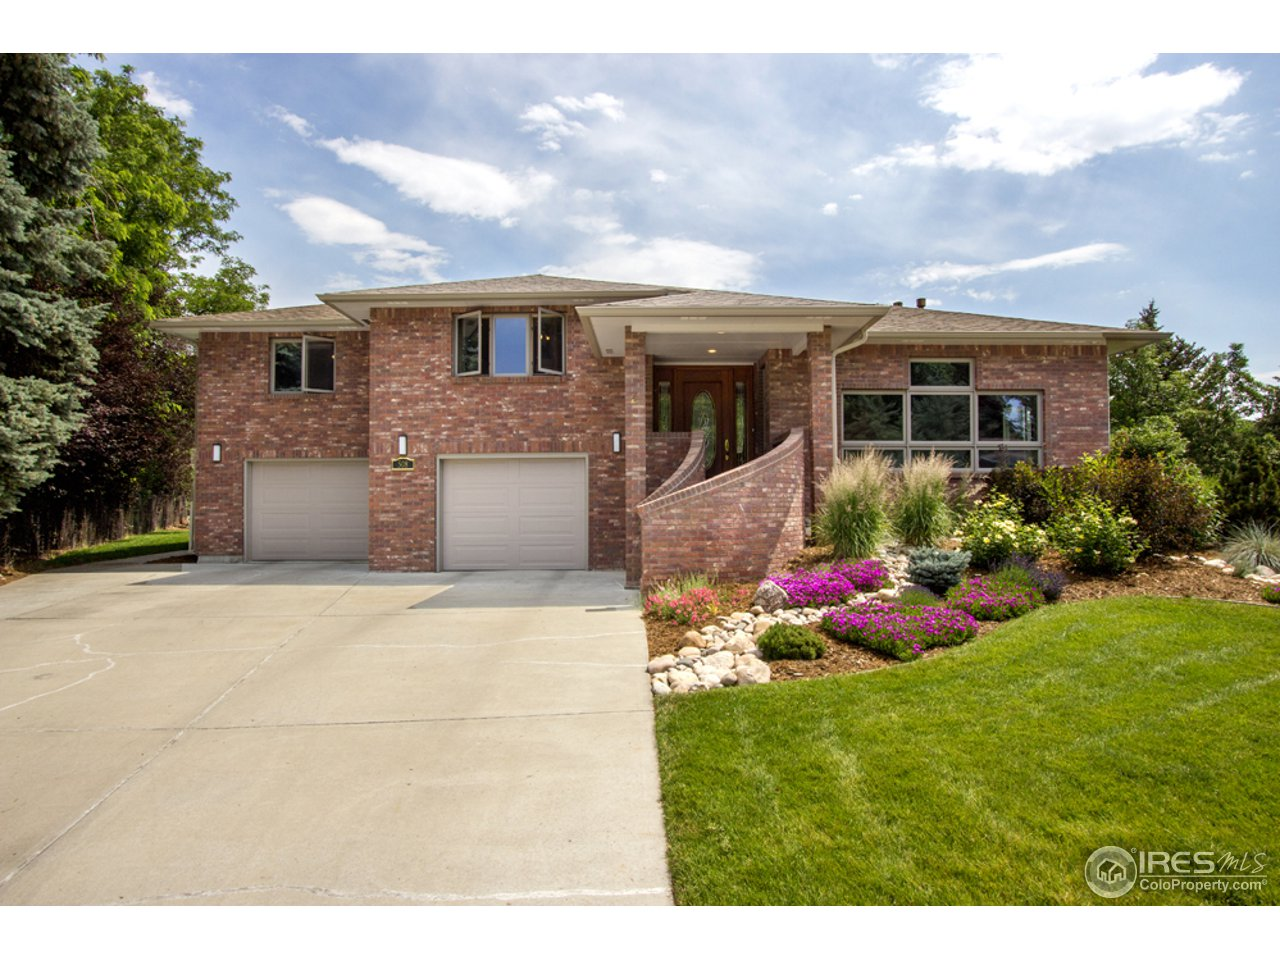 508 Parkway Ct, Fort Collins, CO 80525